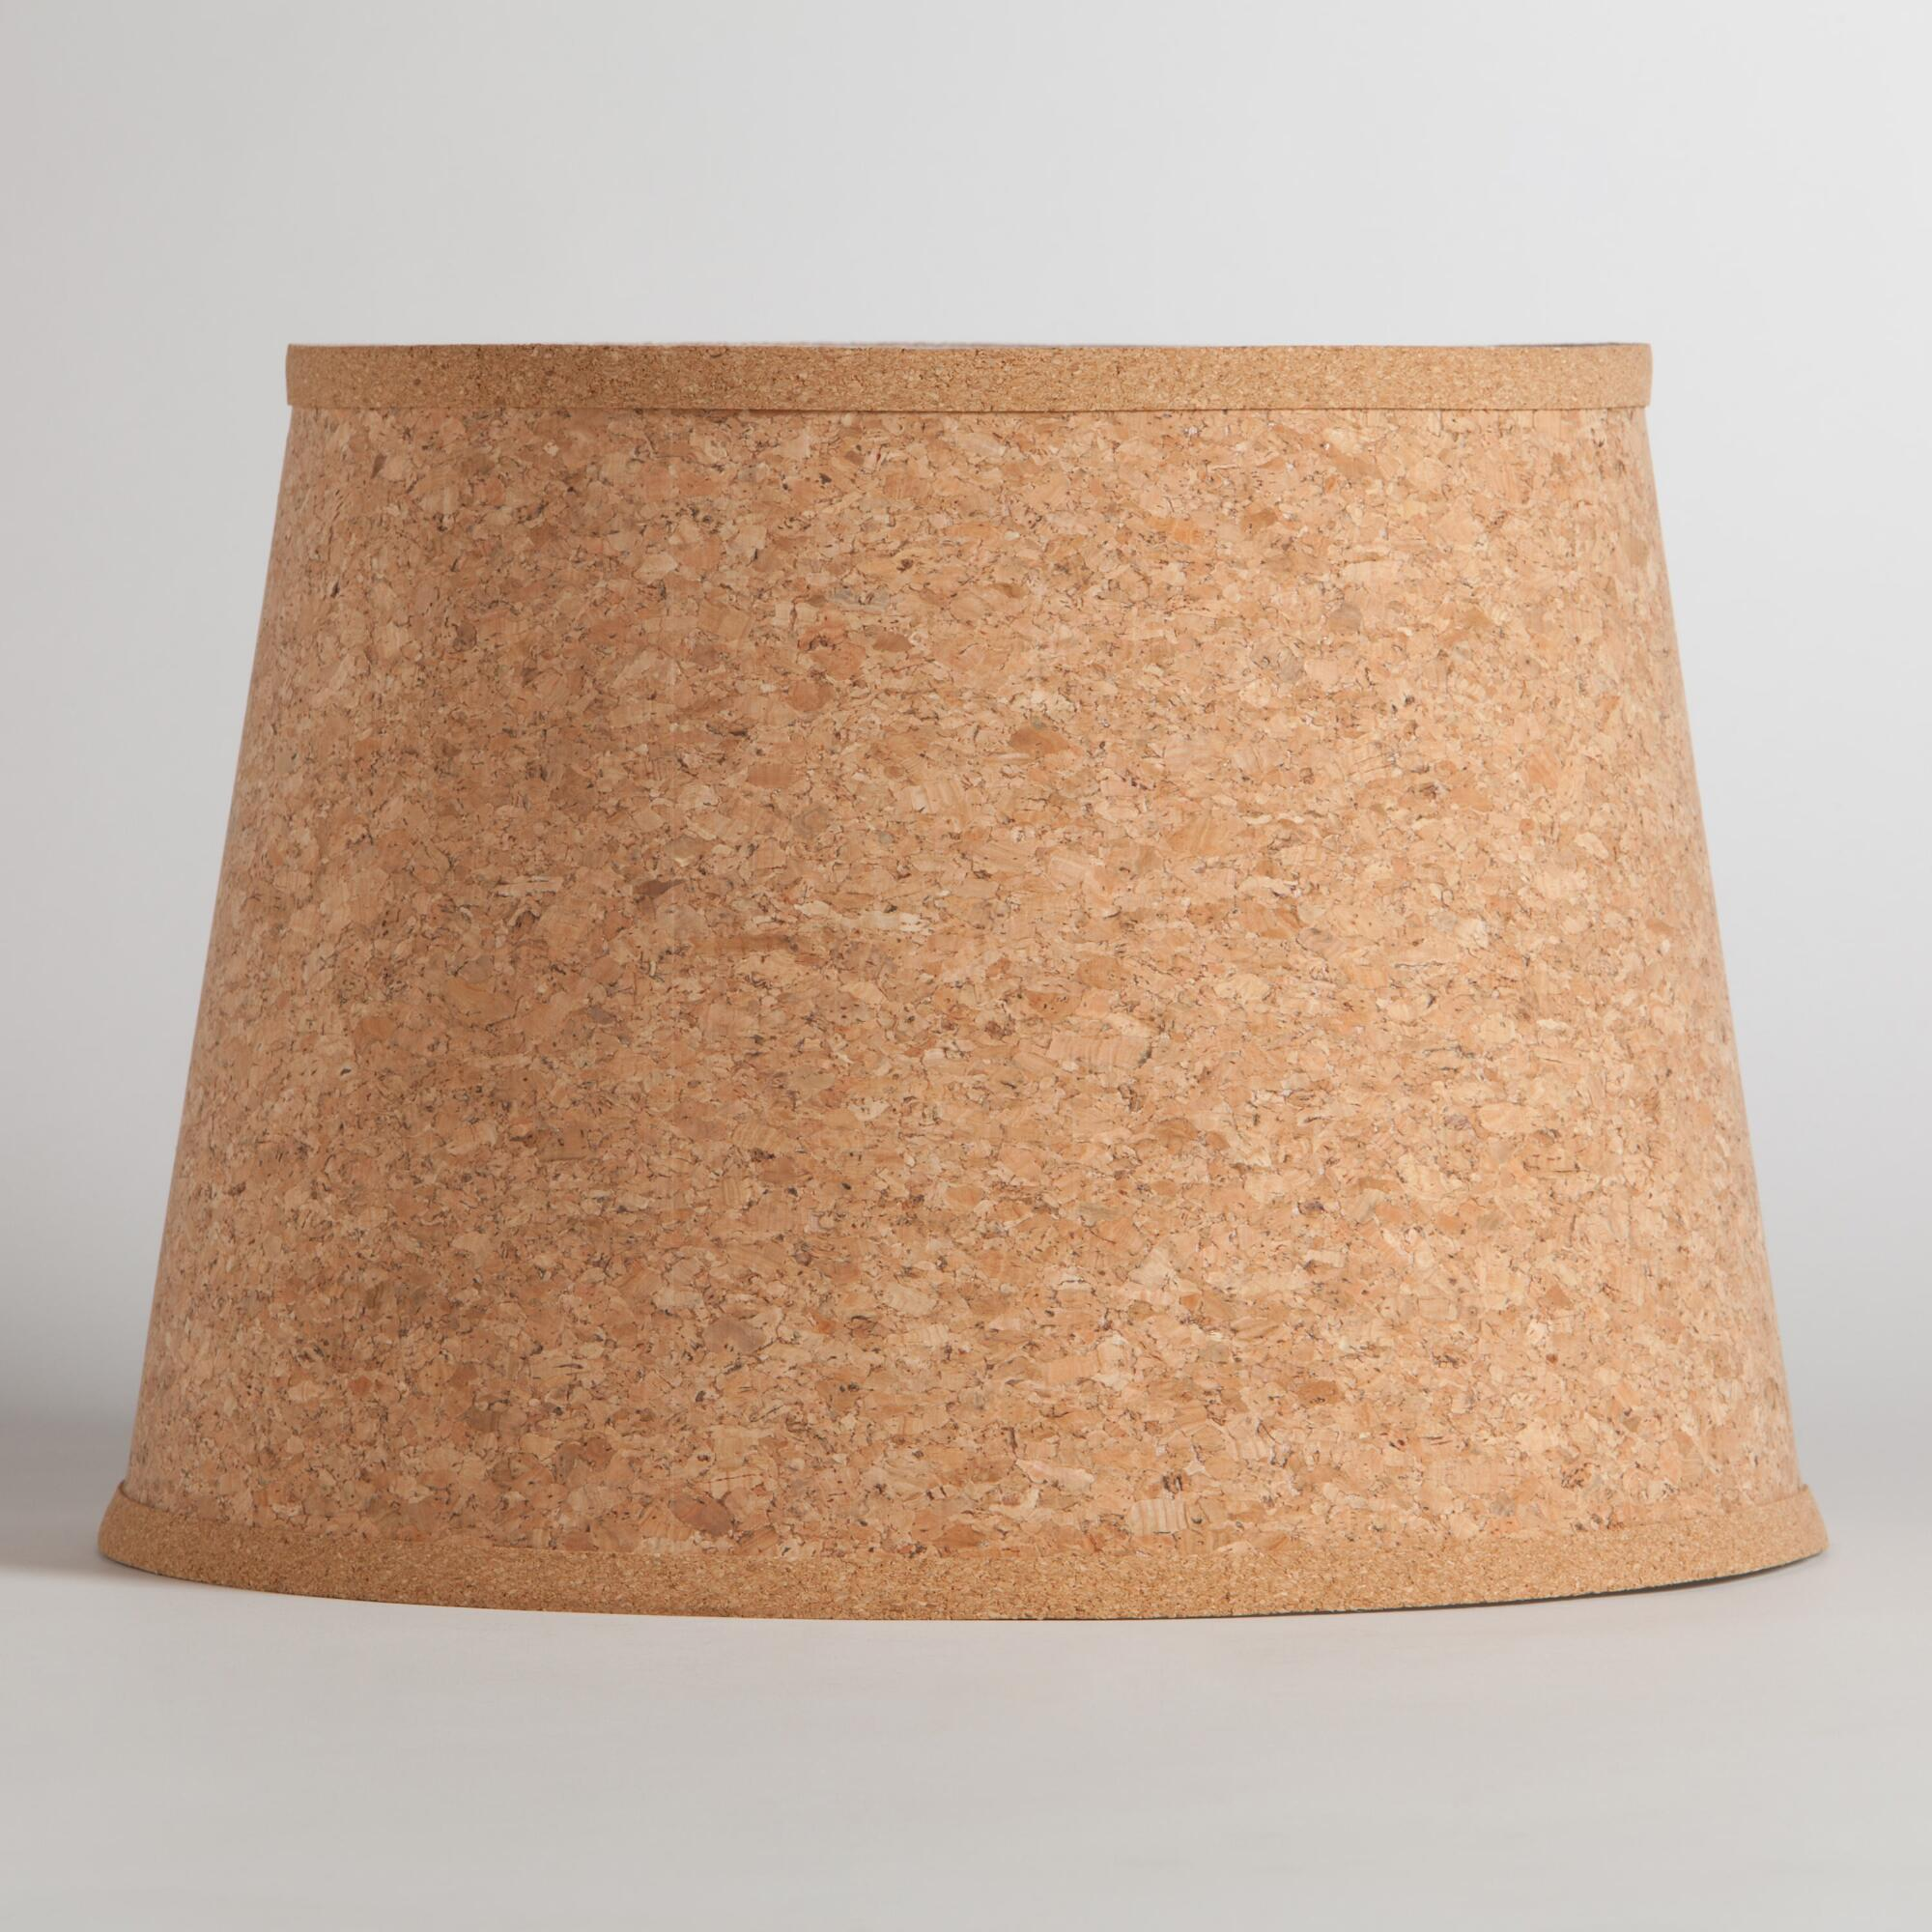 Natural cork table lamp shade world market for Wine cork lampshade